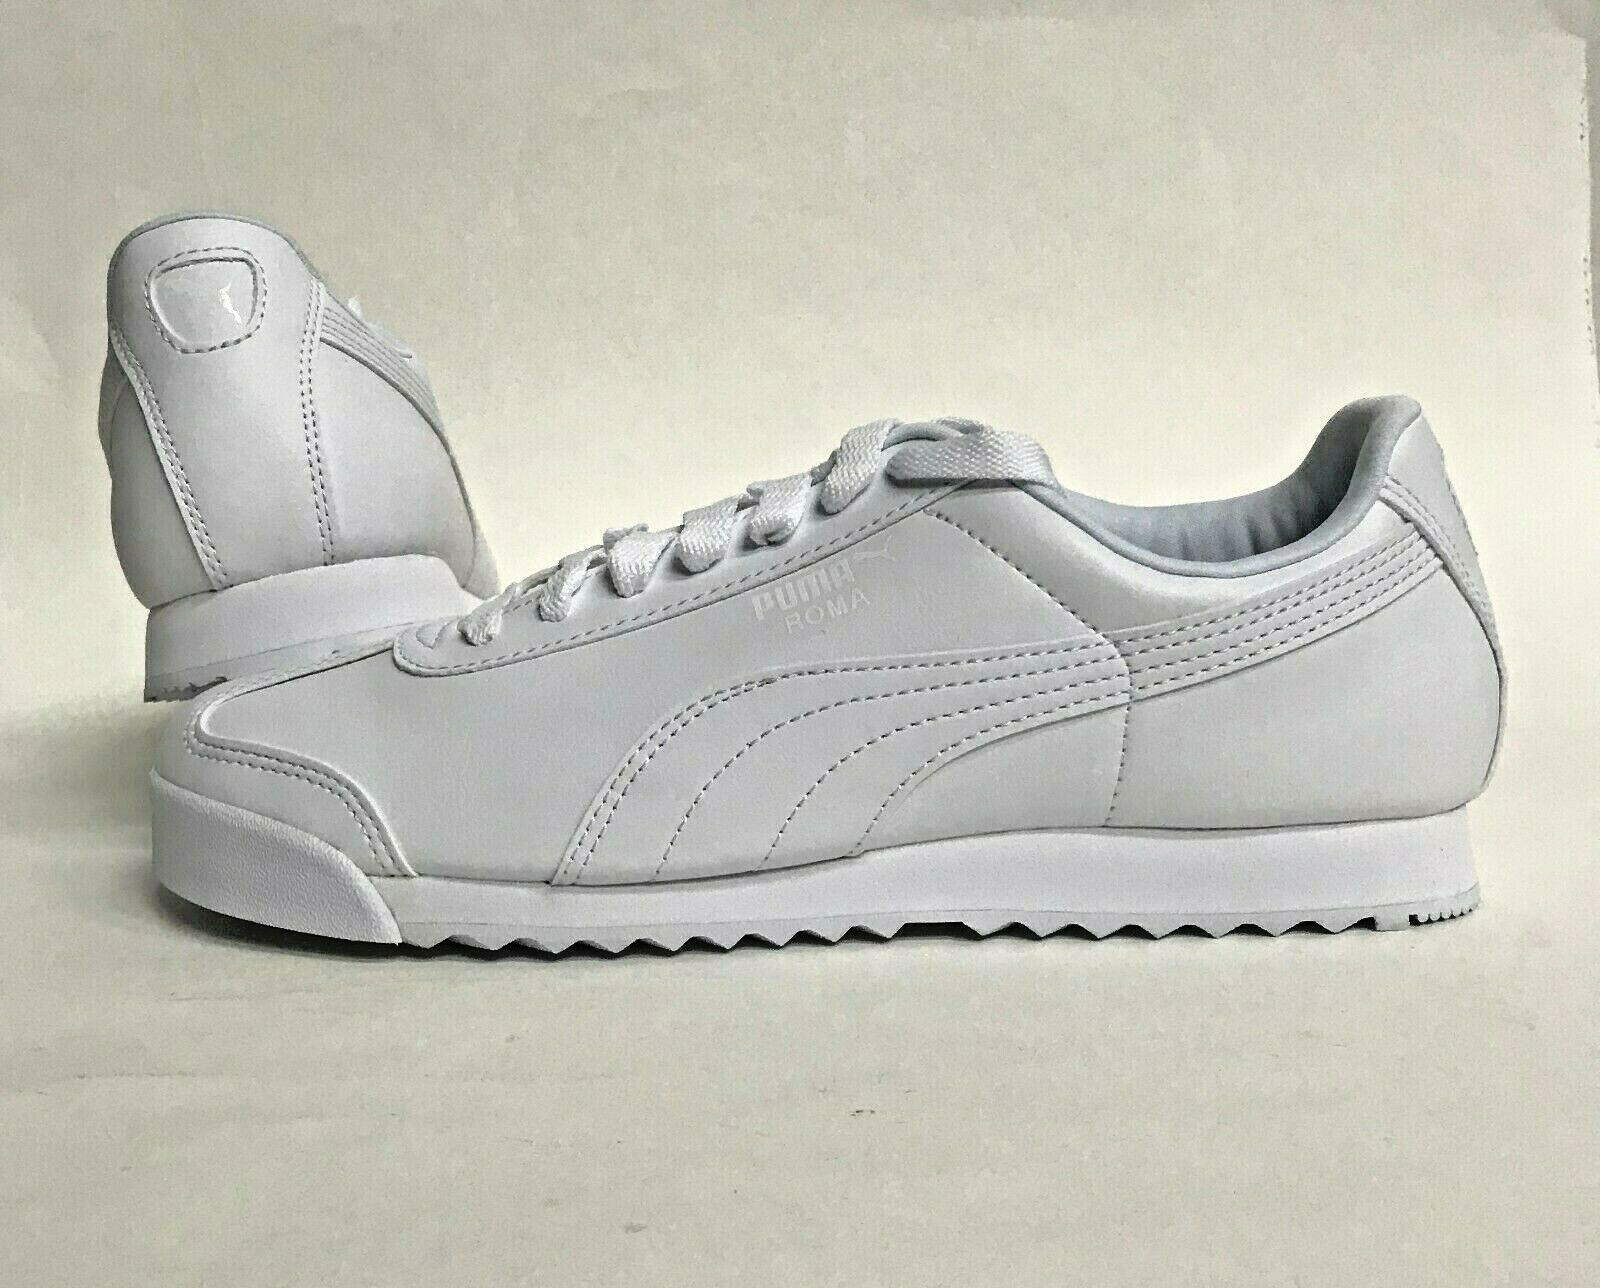 huge discount 61eb8 30742 Men's PUMA SIZE ROMA BASIC sneakers WHITE 353572-21 10 NIB nudtfu222 ...